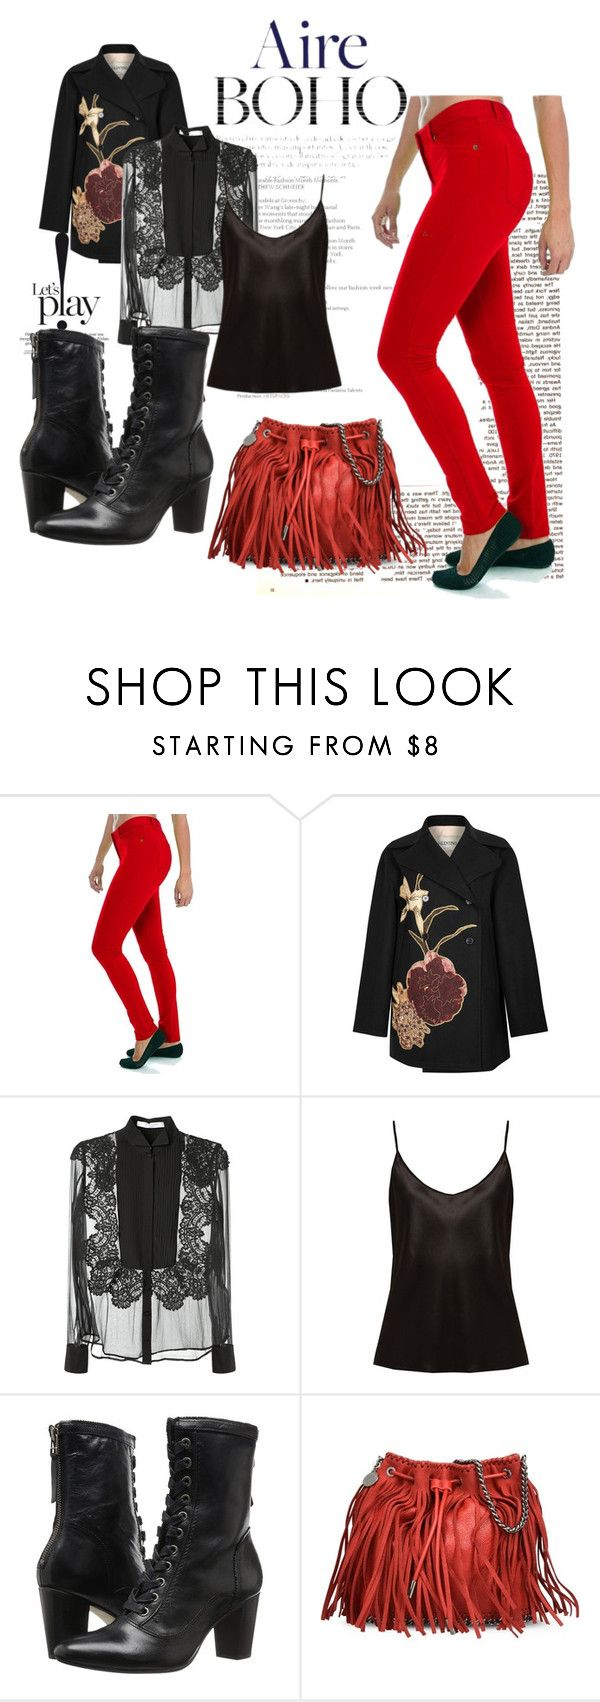 Aire Boho by sweatinstyle on Polyvore featuring Givenchy, La Perla, Valentino, Johnston & Murphy, Fashion Outlet NYC and STELLA McCARTNEY